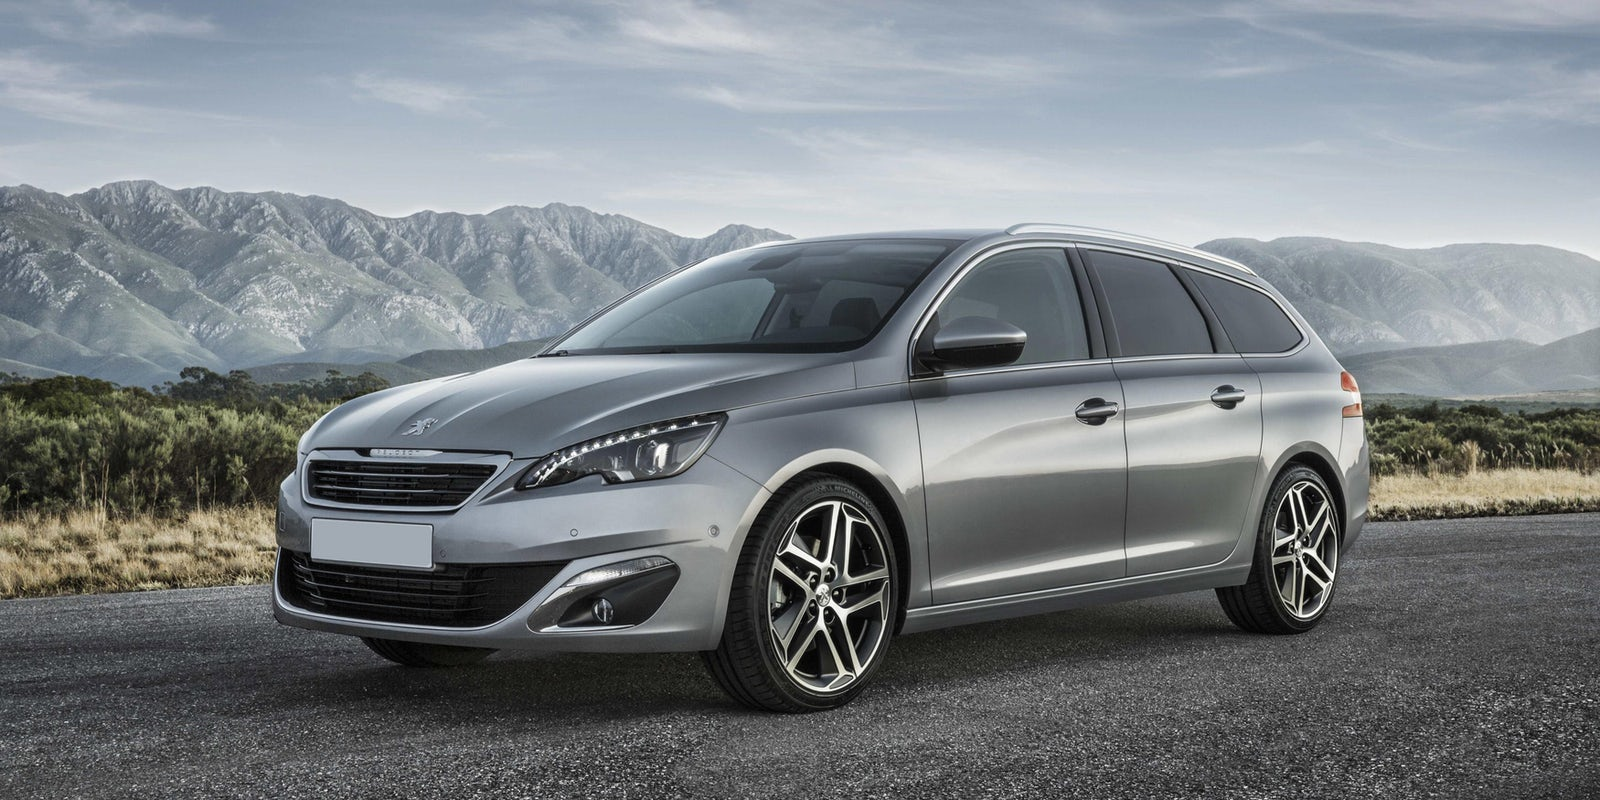 2008 10best cars 10best cars page 2 car and driver - 8 Peugeot 308 Sw